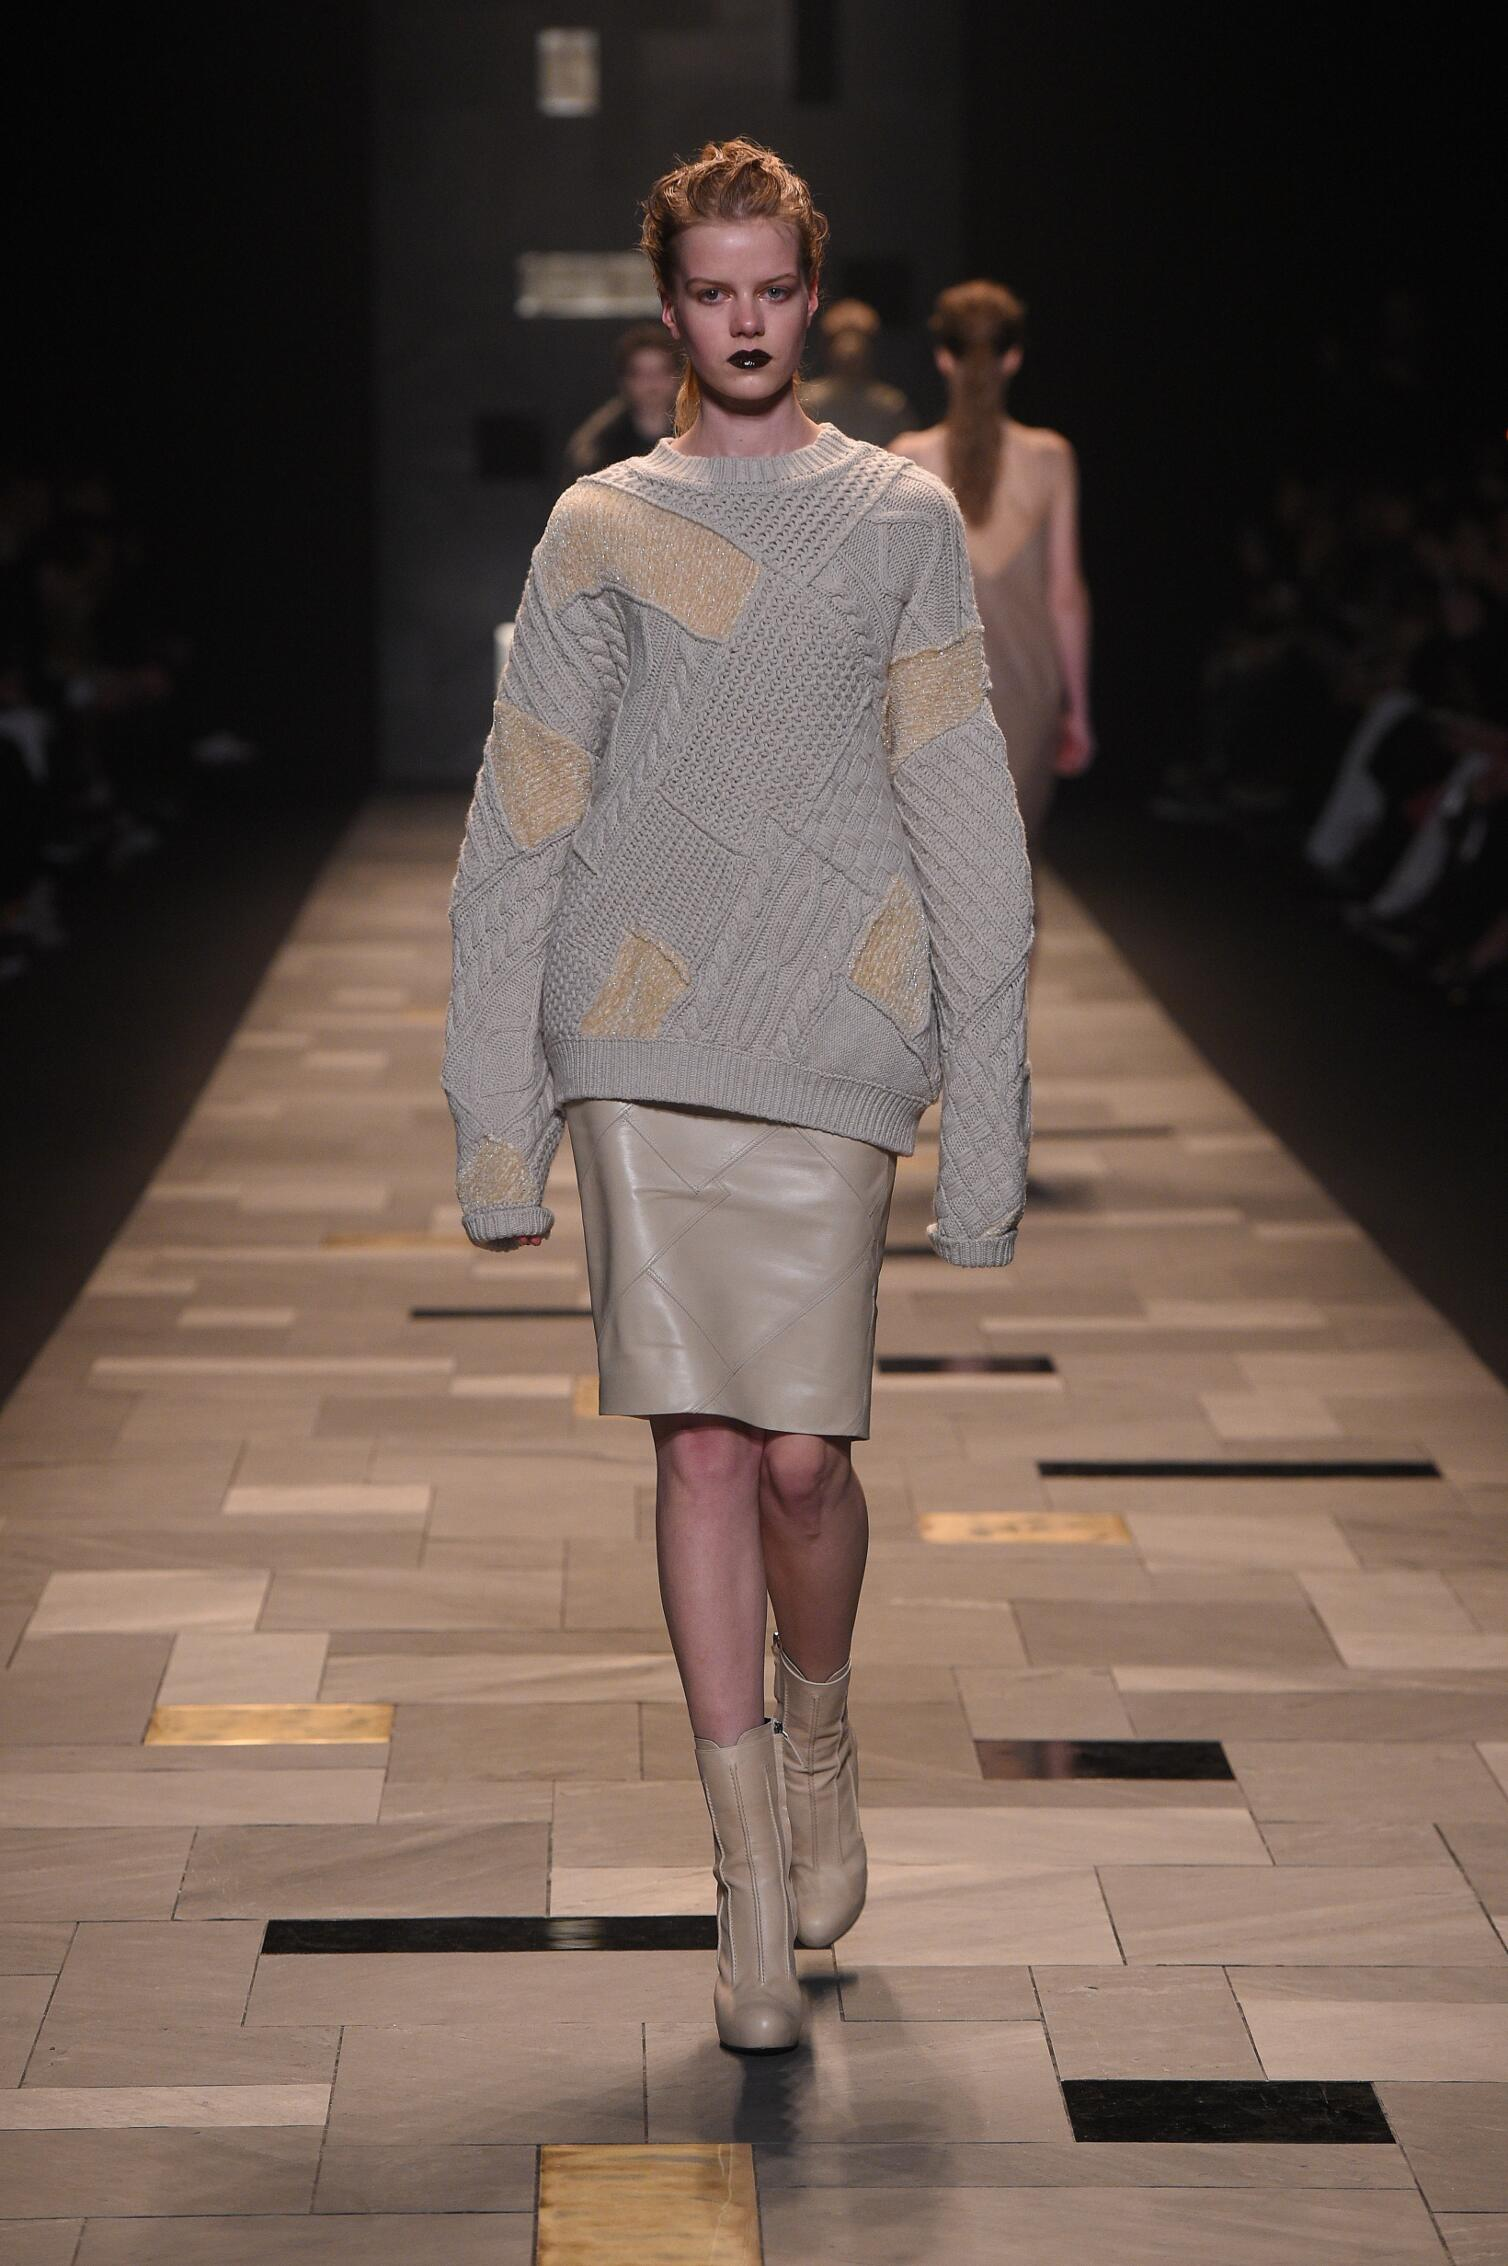 Catwalk Trussardi Womenswear Collection Winter 2015